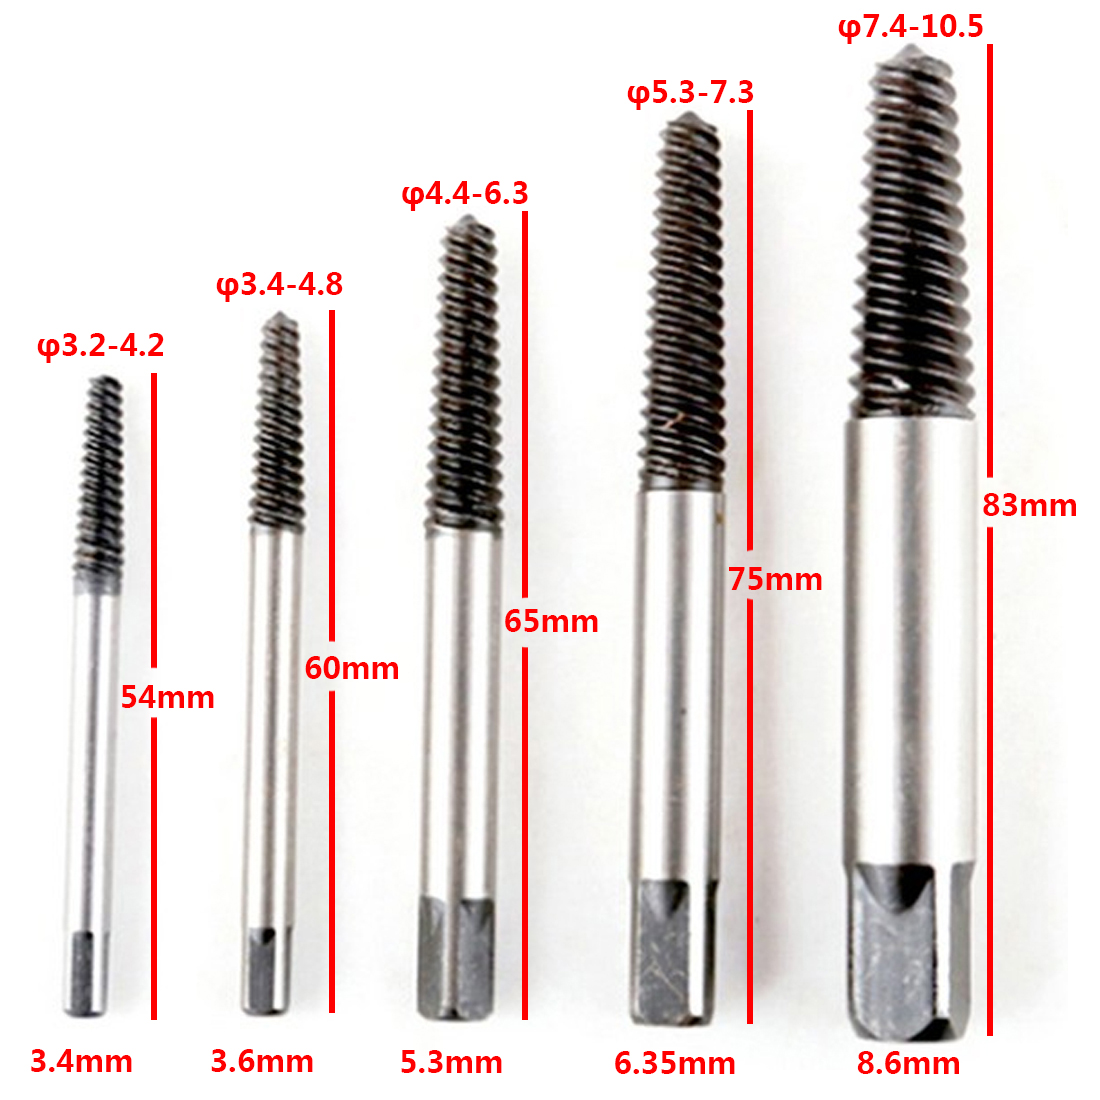 Carbon Steel 5pcs/set Screw Extractor Broken Bolt Remover Drill Guide Bits Set